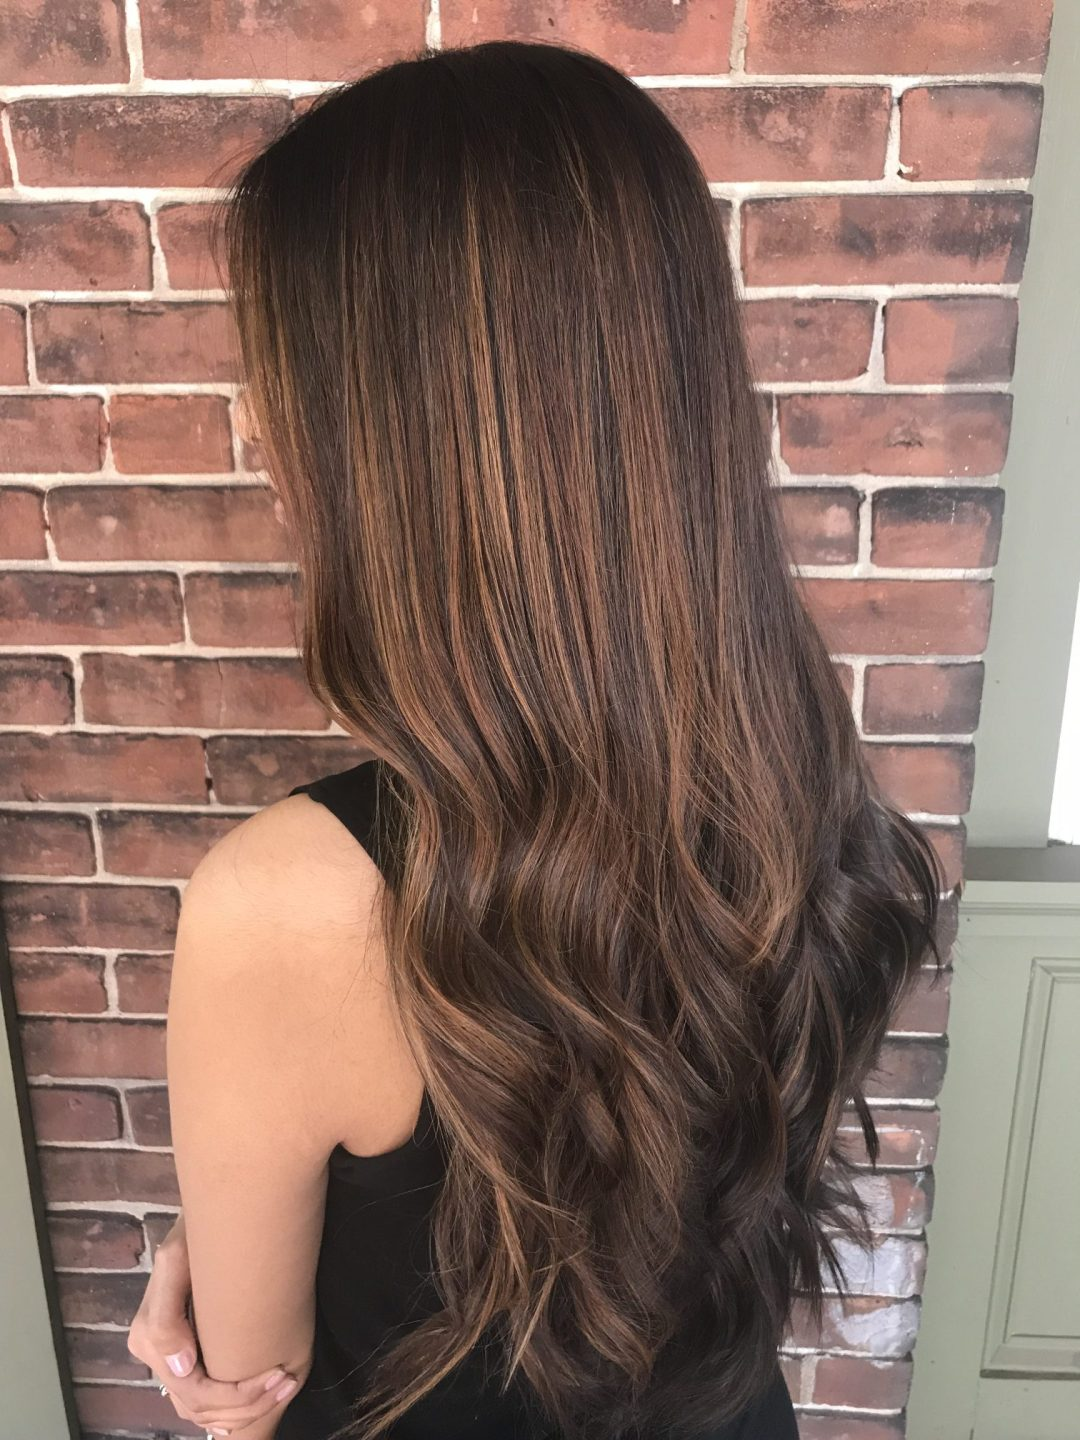 Salon J & Tips on how to get your ideal hair treatment